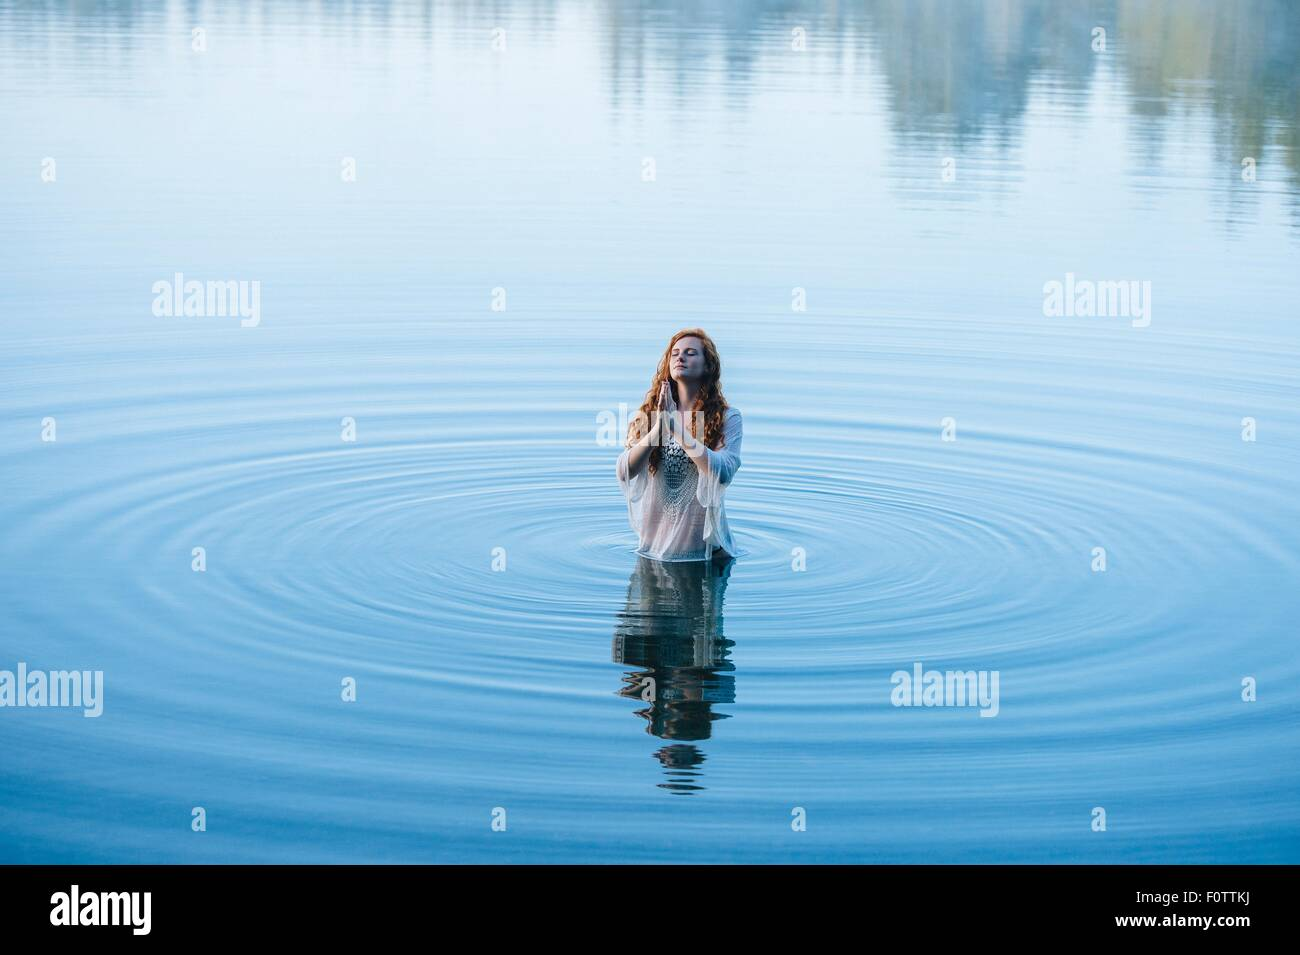 Young woman standing in lake ripples praying with eyes closed - Stock Image